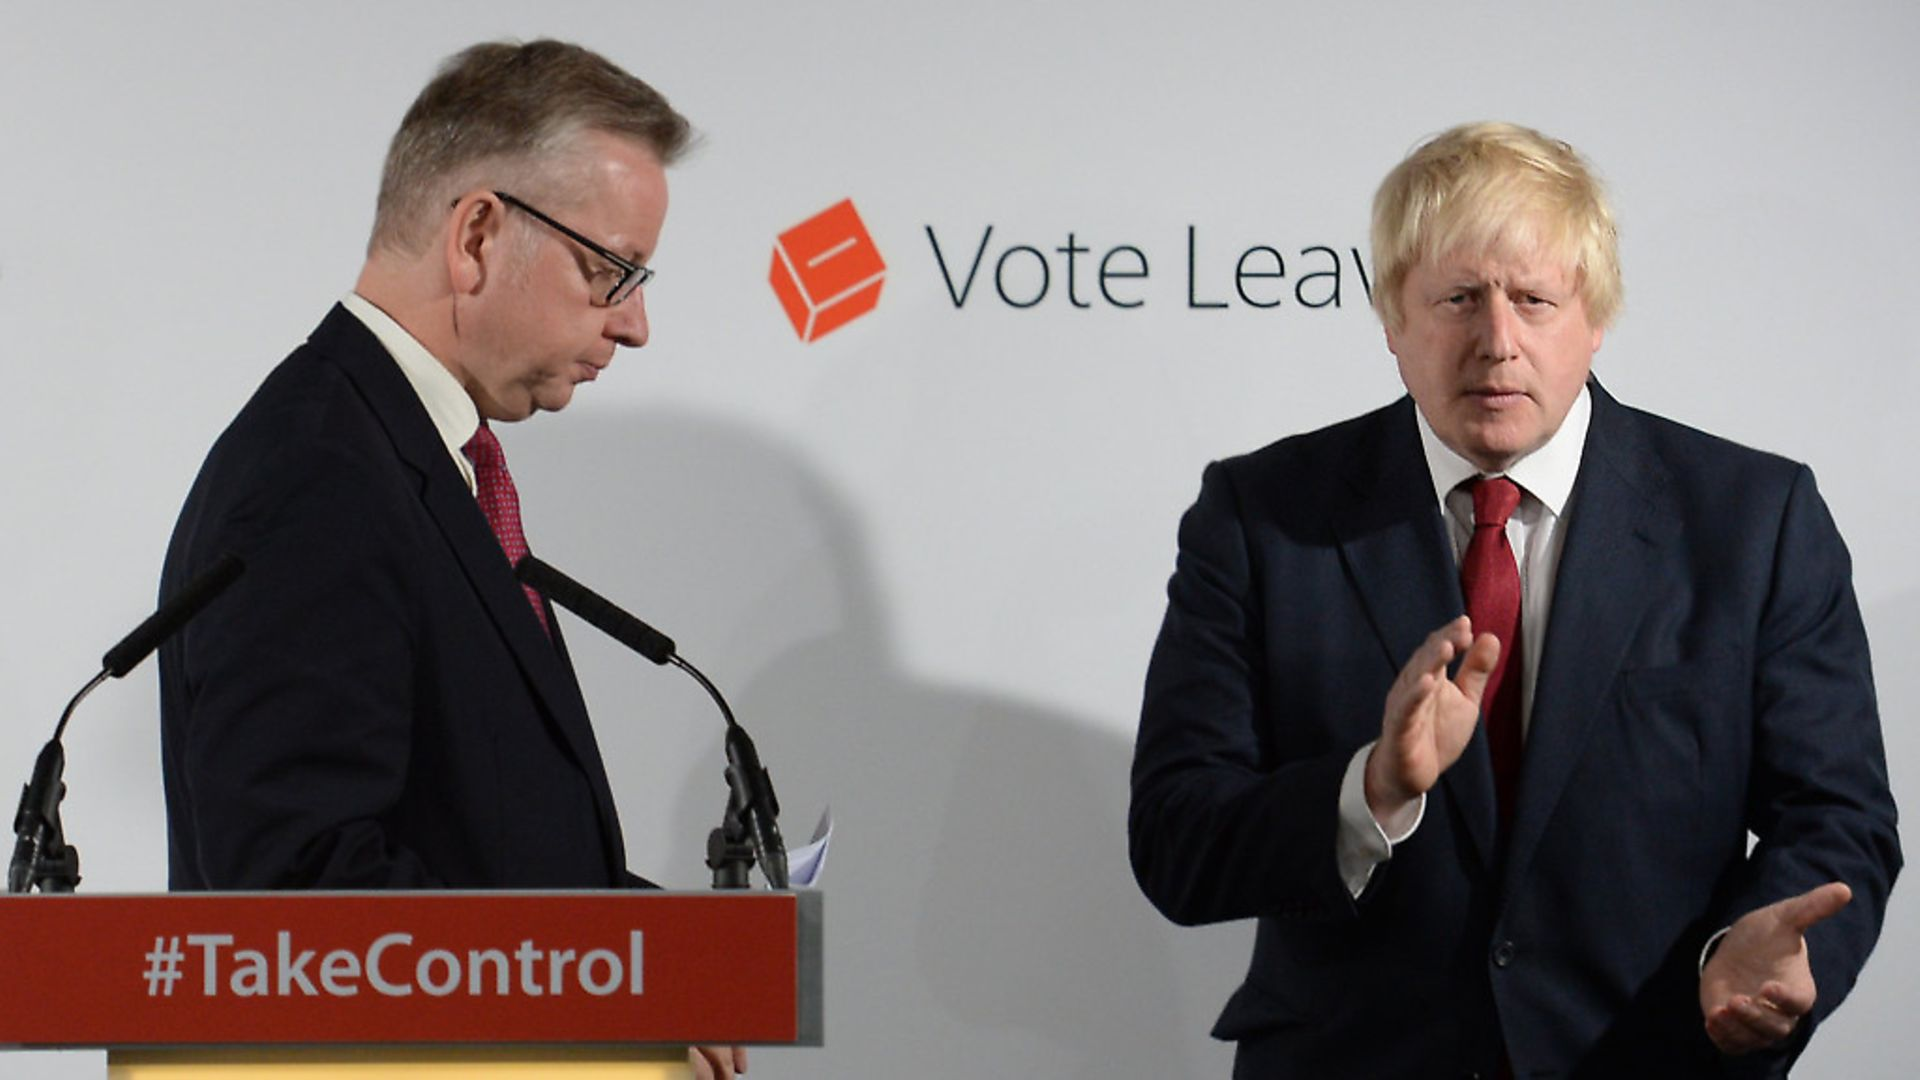 Michael Gove and Boris Johnson in the wake of the Brexit vote. Photograph: Stefan Rousseau. - Credit: PA Archive/PA Images